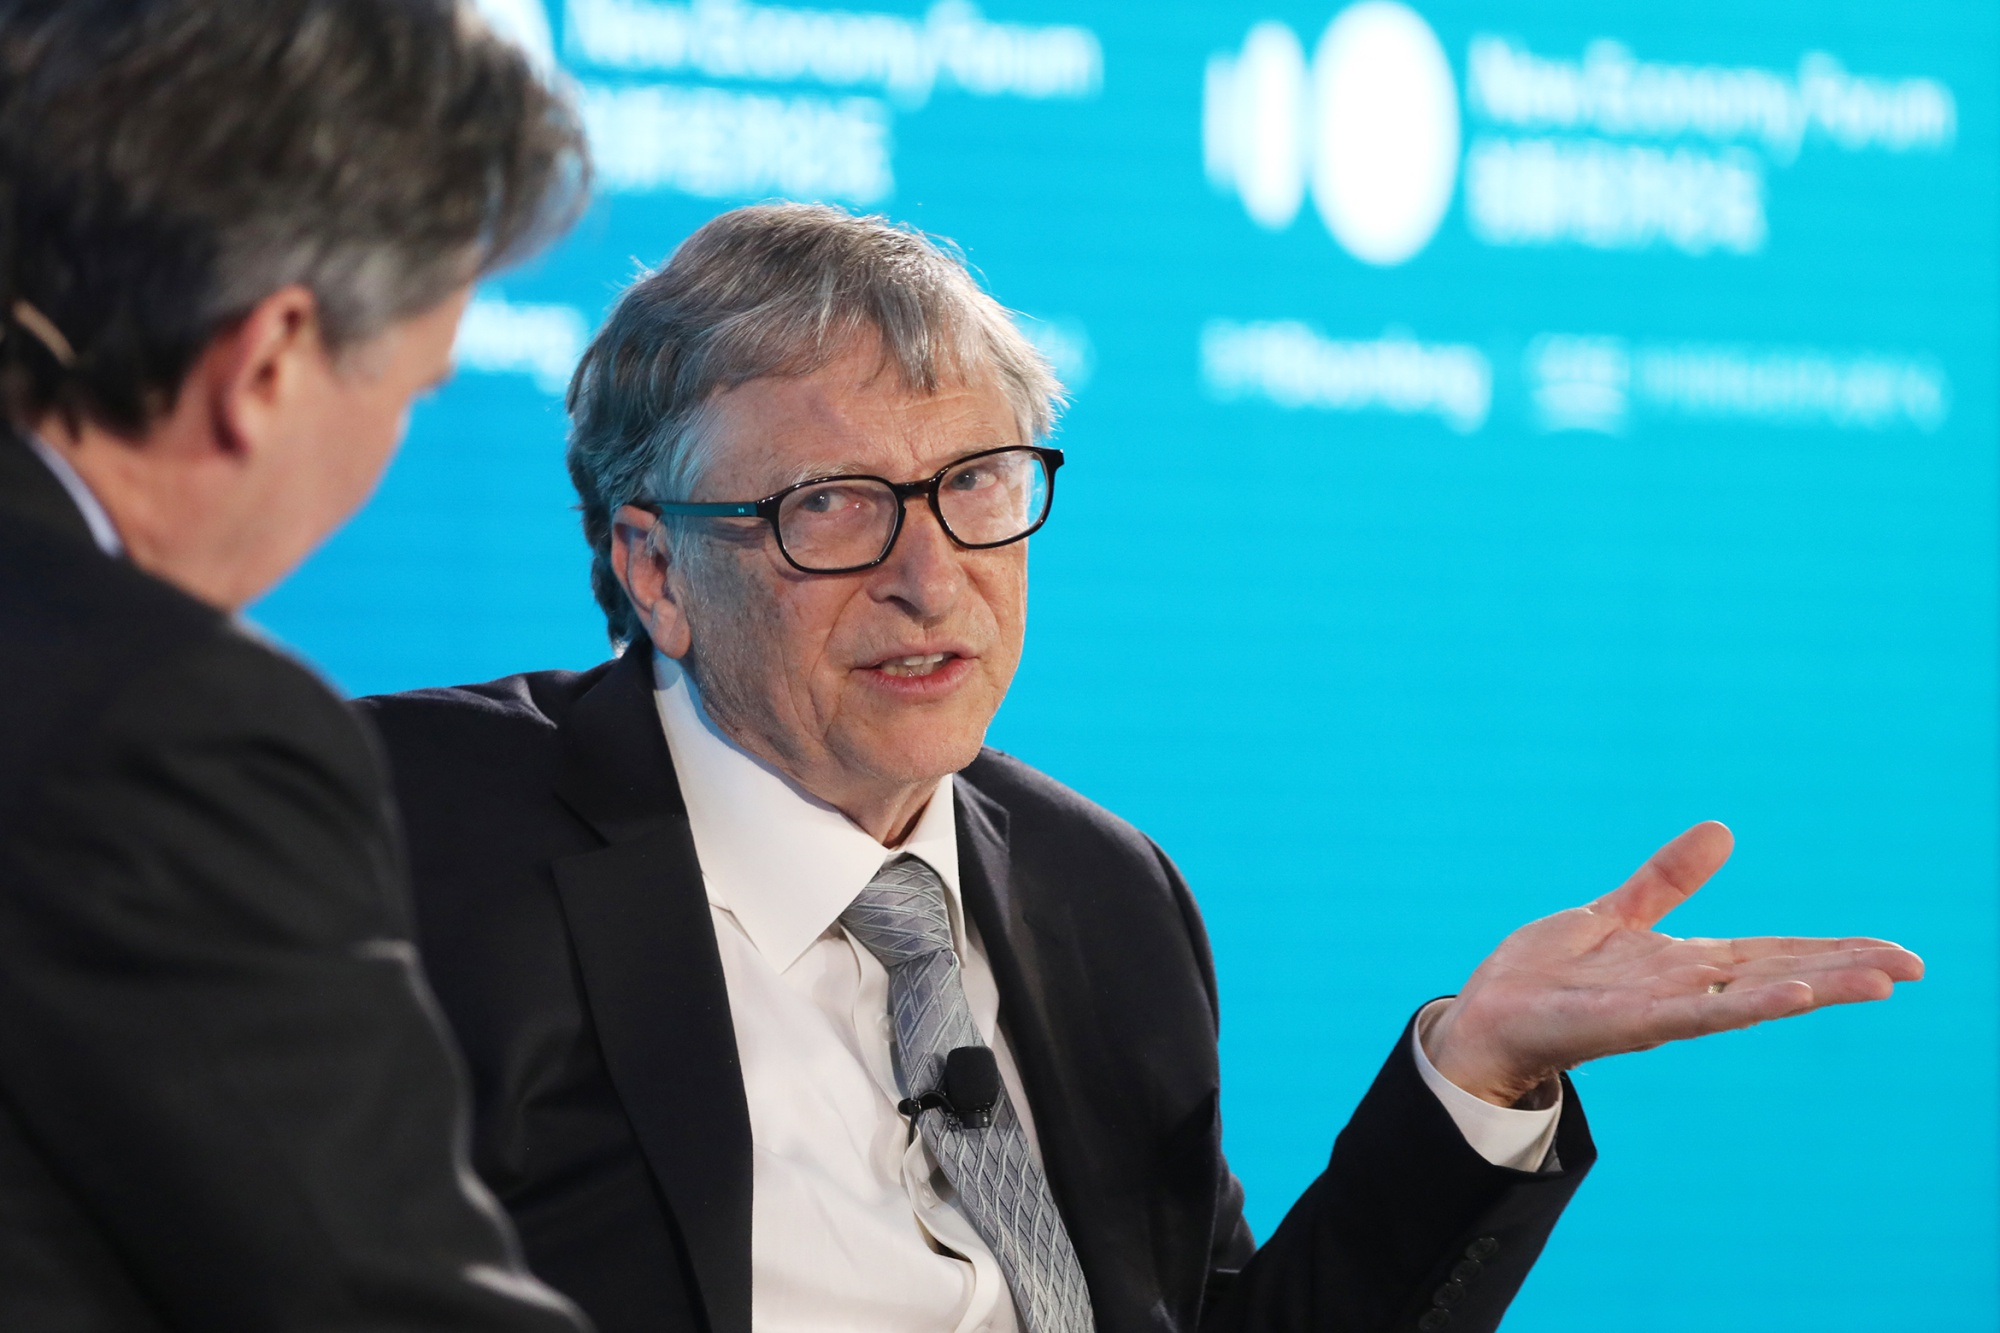 Key Speakers and Interviews at the Bloomberg New Economy Forum